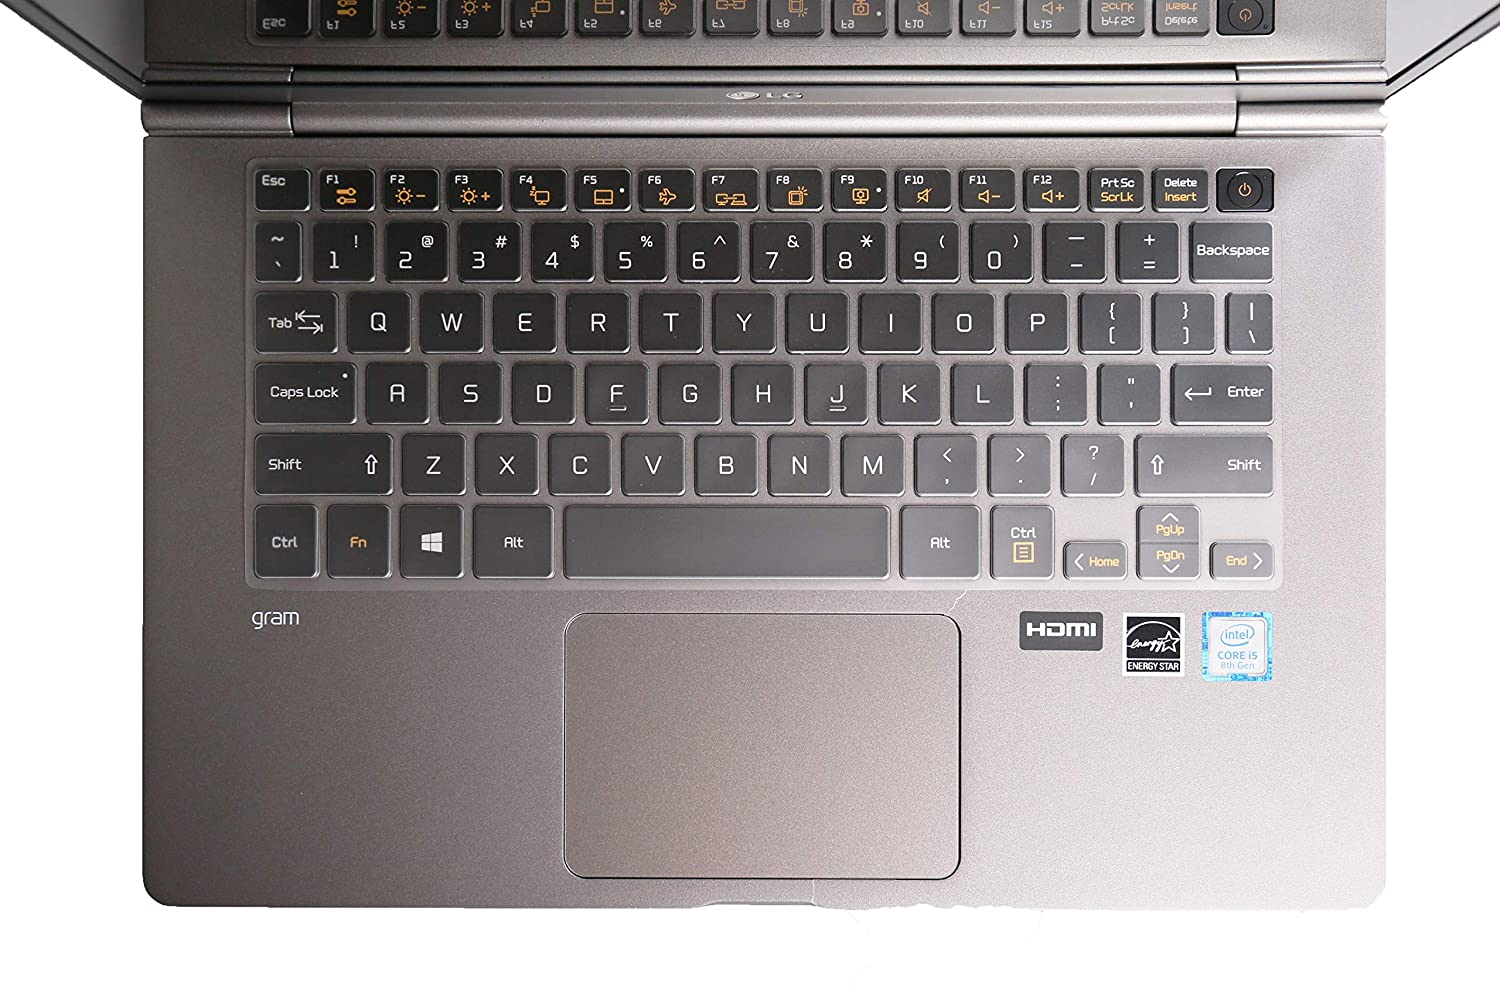 Amazon.com: Leze - Ultra Thin Keyboard Cover for LG Gram 14Z970 14Z980 14Z990 13Z970 13Z980 13Z990 Thin and Light Laptop - TPU: Computers & Accessories